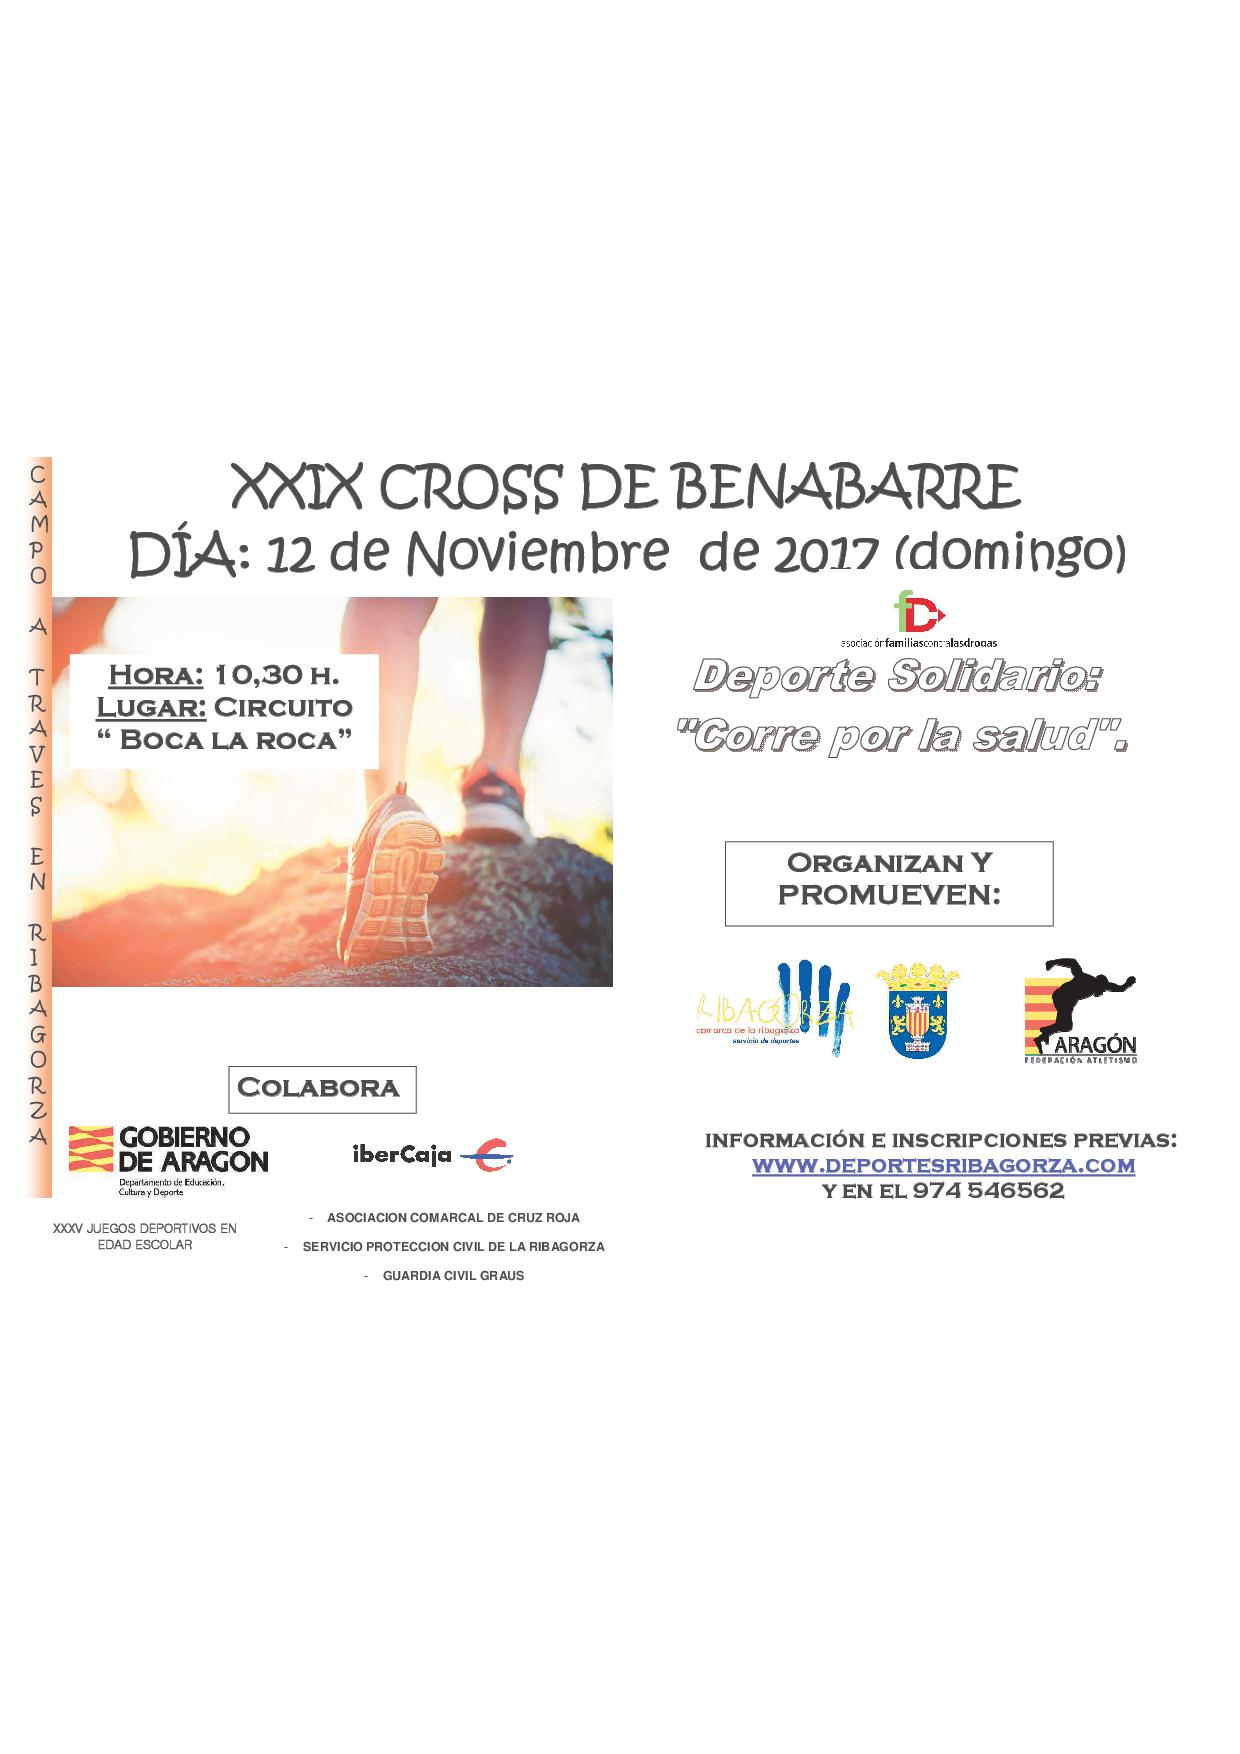 XXX CROSS DE BENABARRE